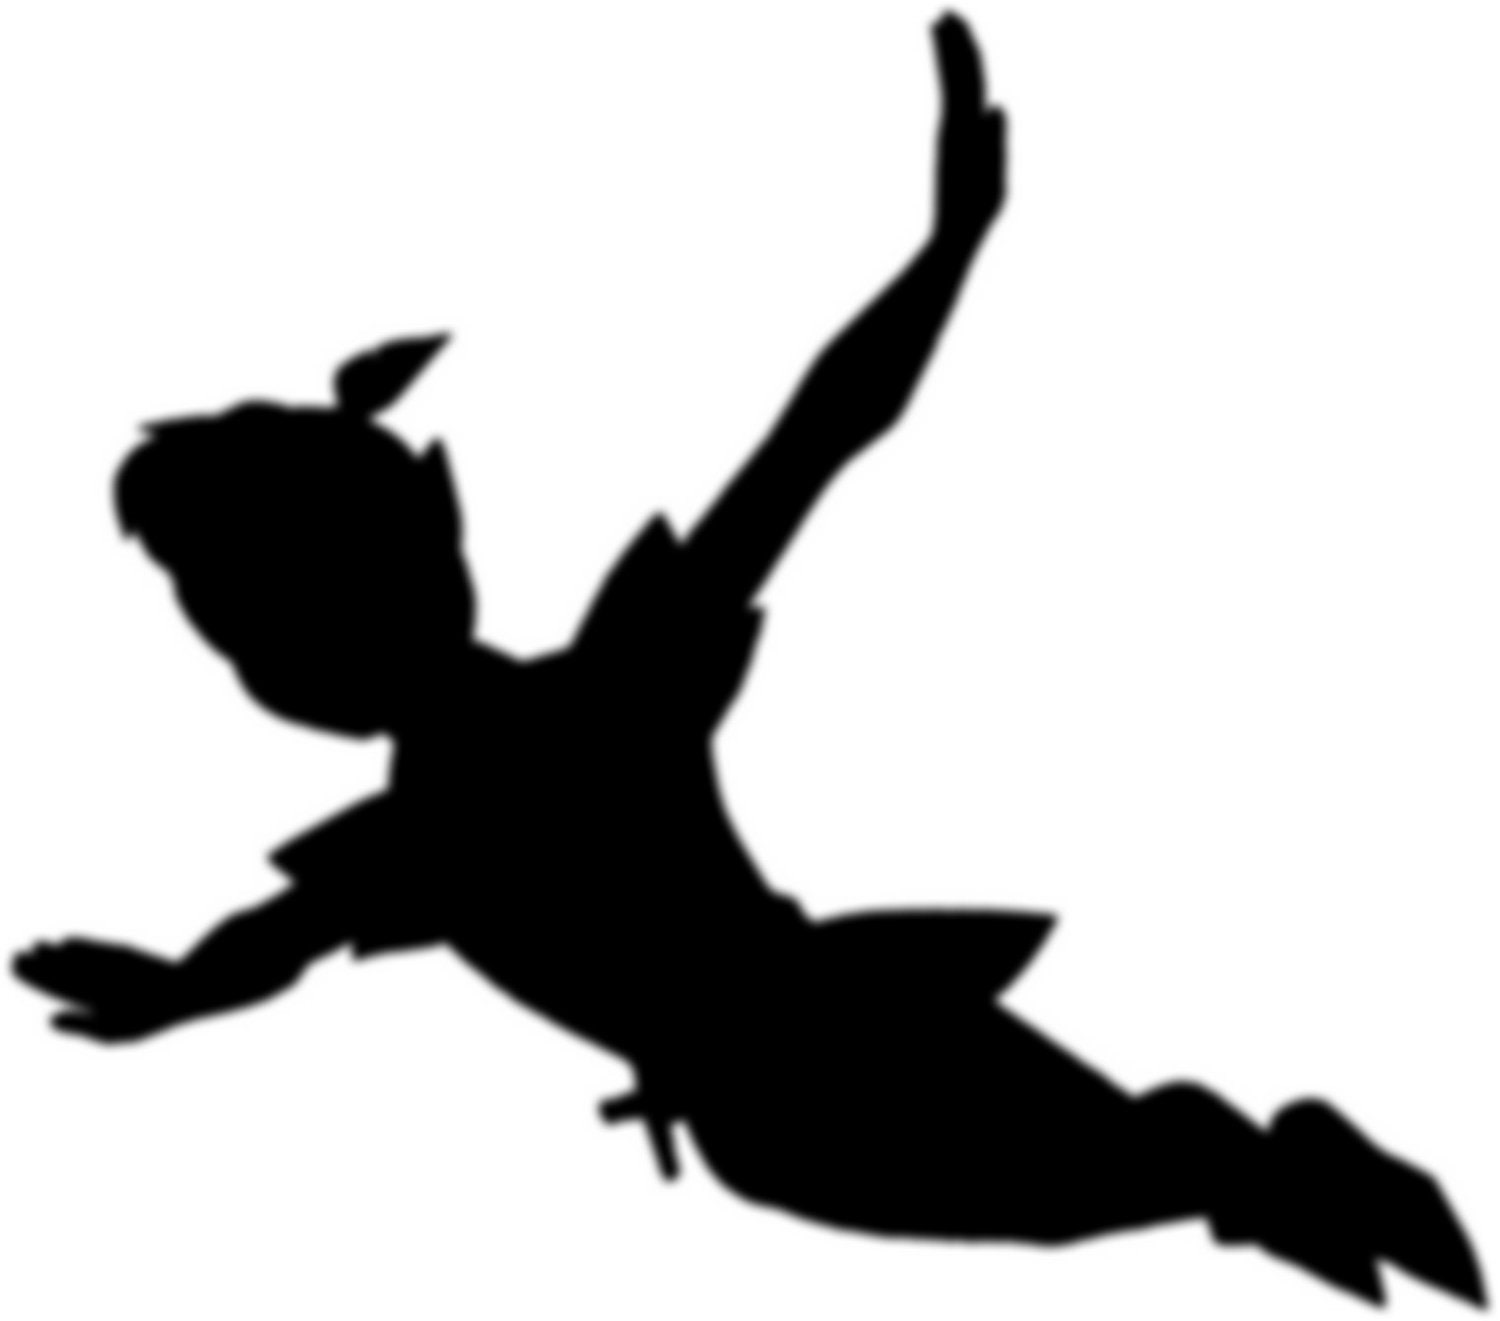 Peter Pan Silhouette | Sweet Dreams | Pinterest